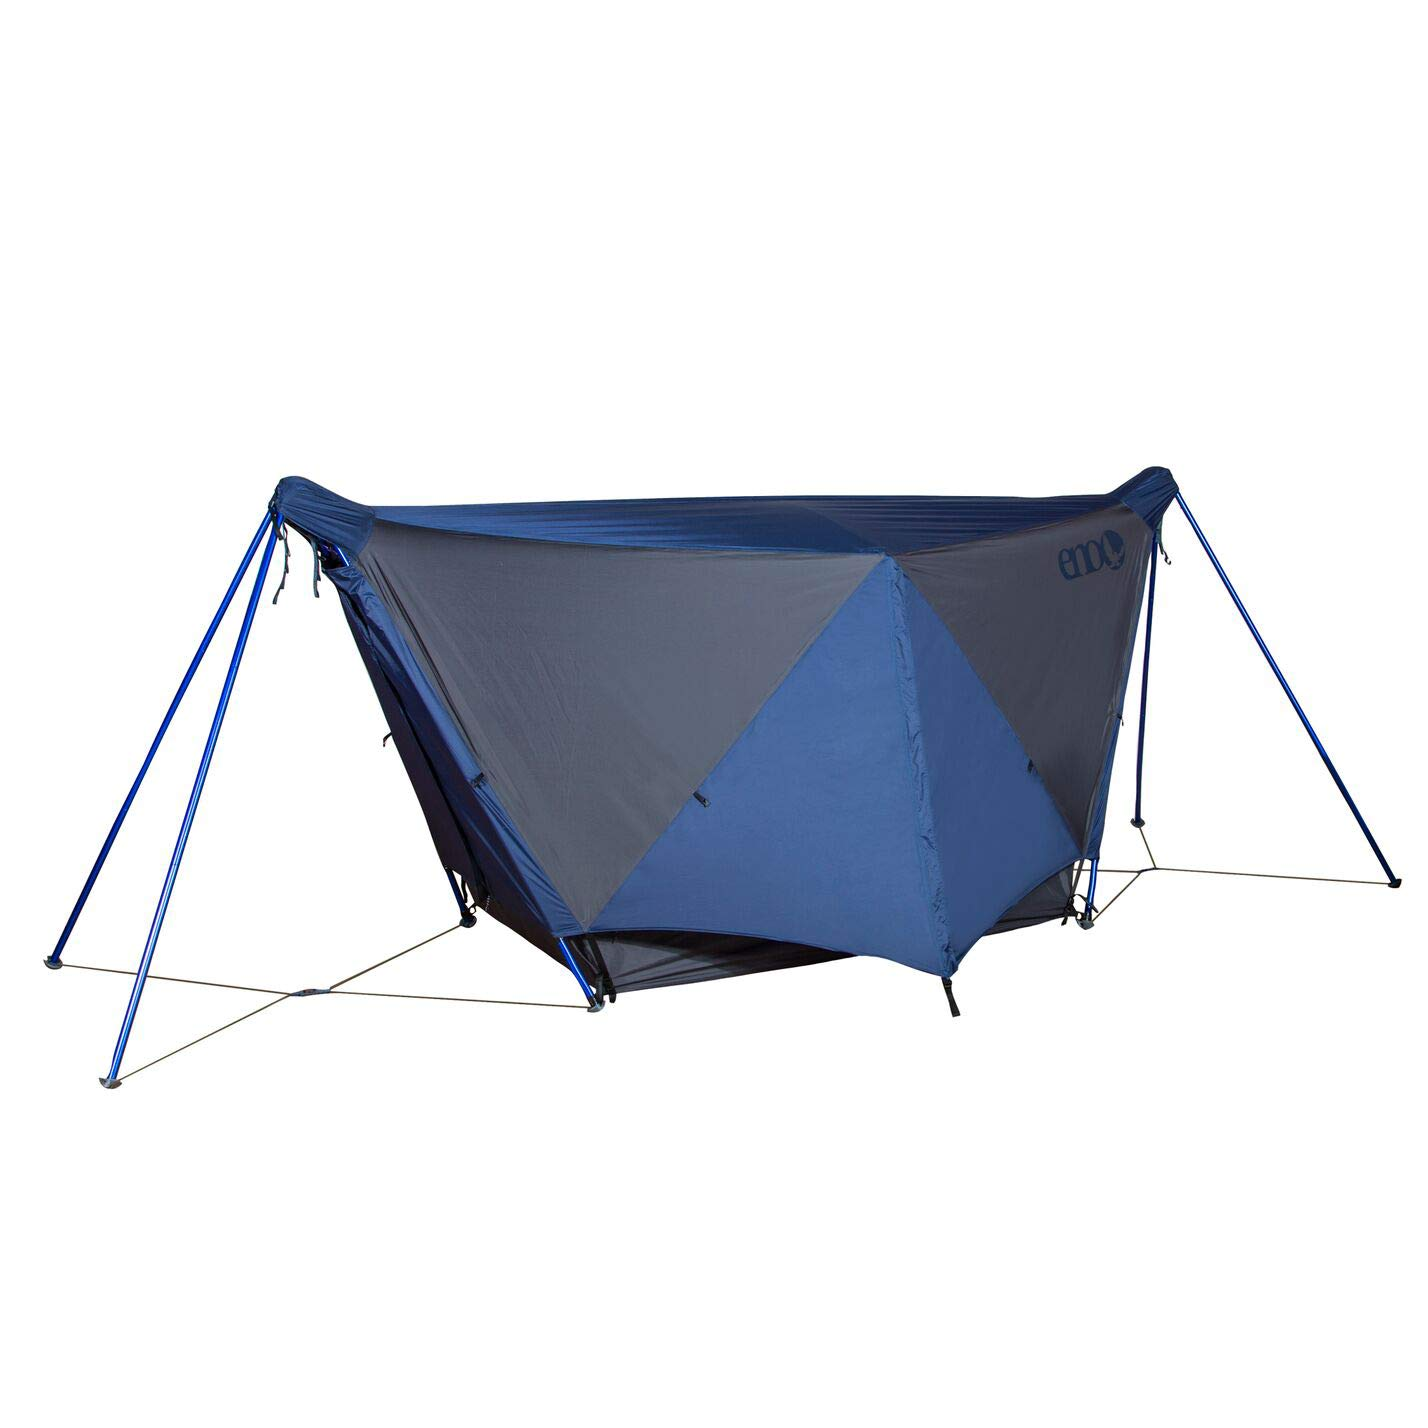 ENO – Eagles Nest Outfitters Nomad Shelter System, Hammock Pack